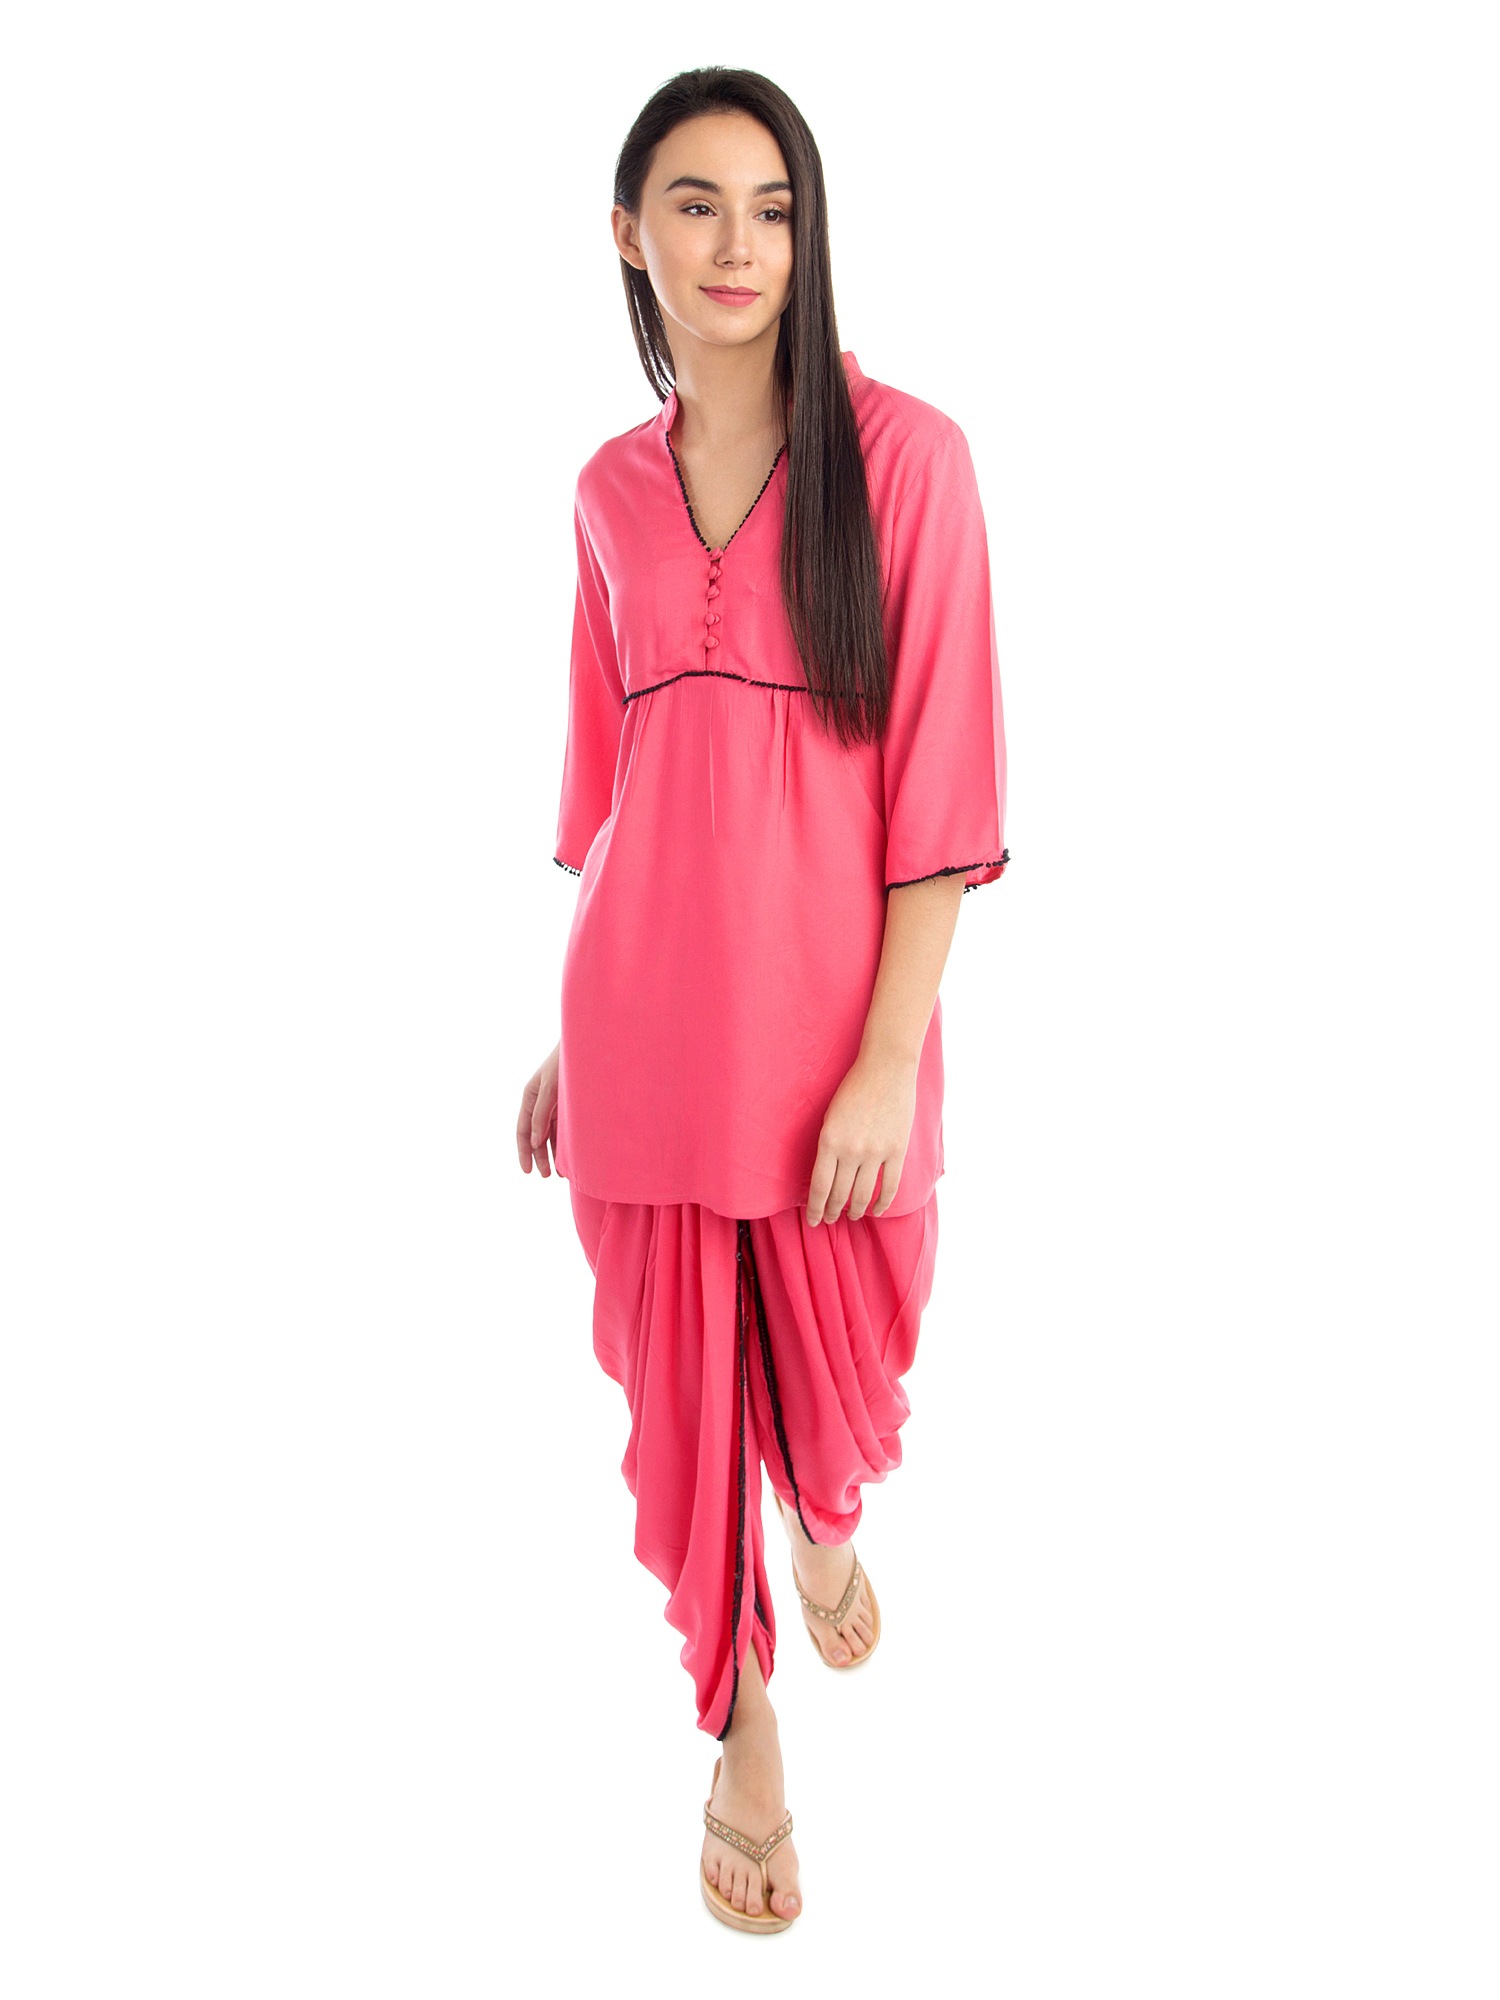 Embellished Top and Dhoti Pant Set in Vinyl Hot Pink